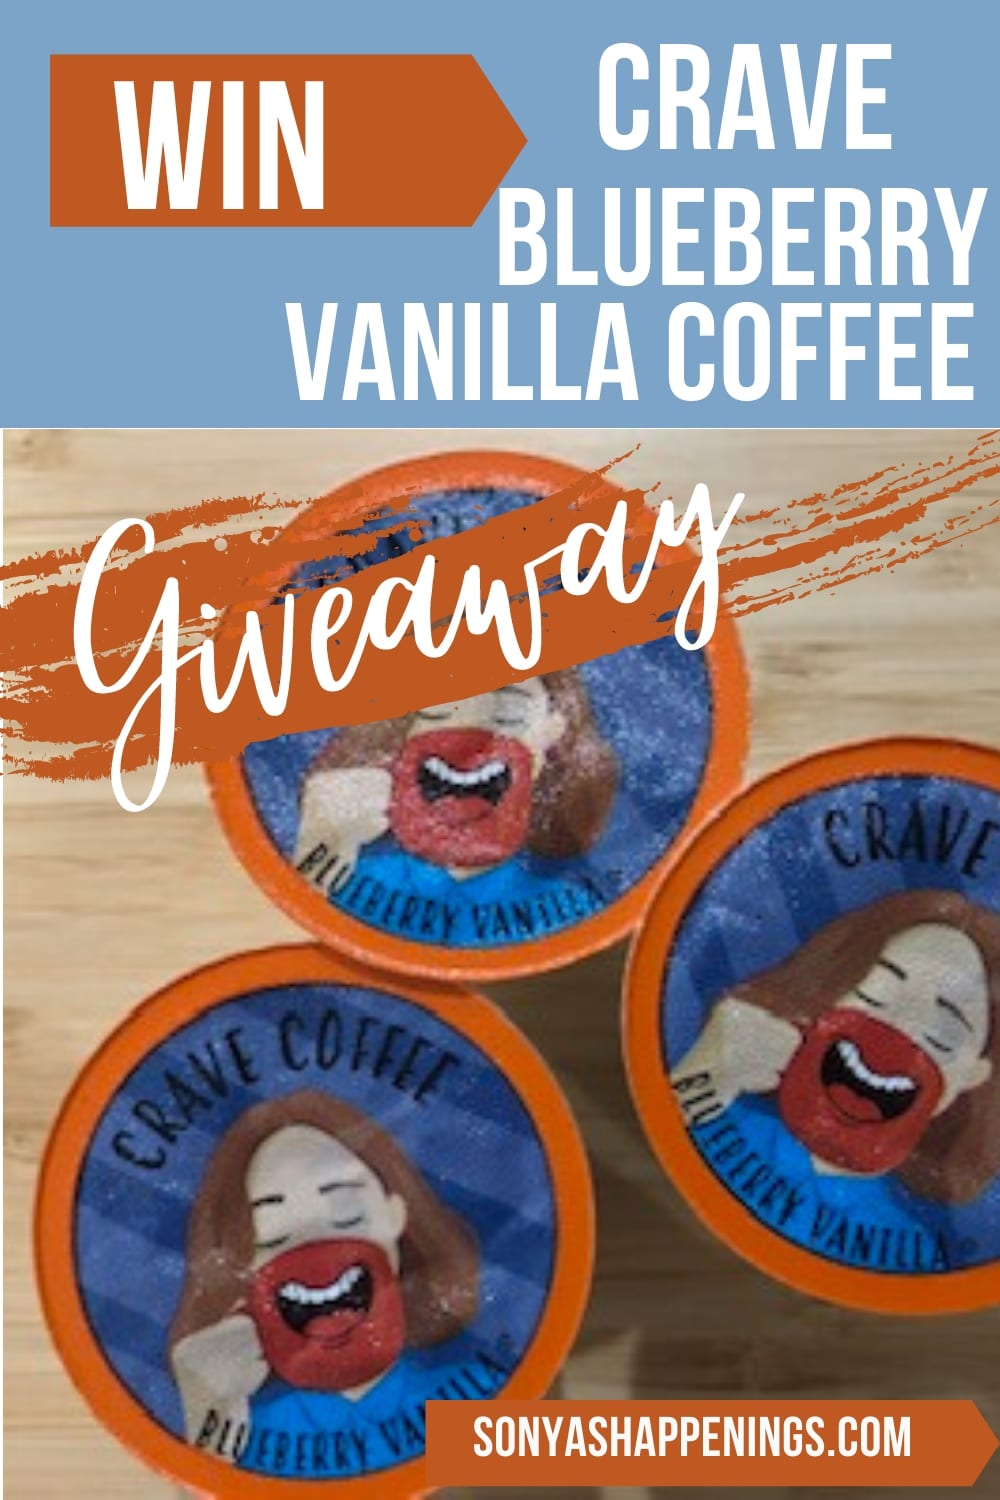 Win Crave Blueberry Vanilla Coffee~ giveaway ends 7-29